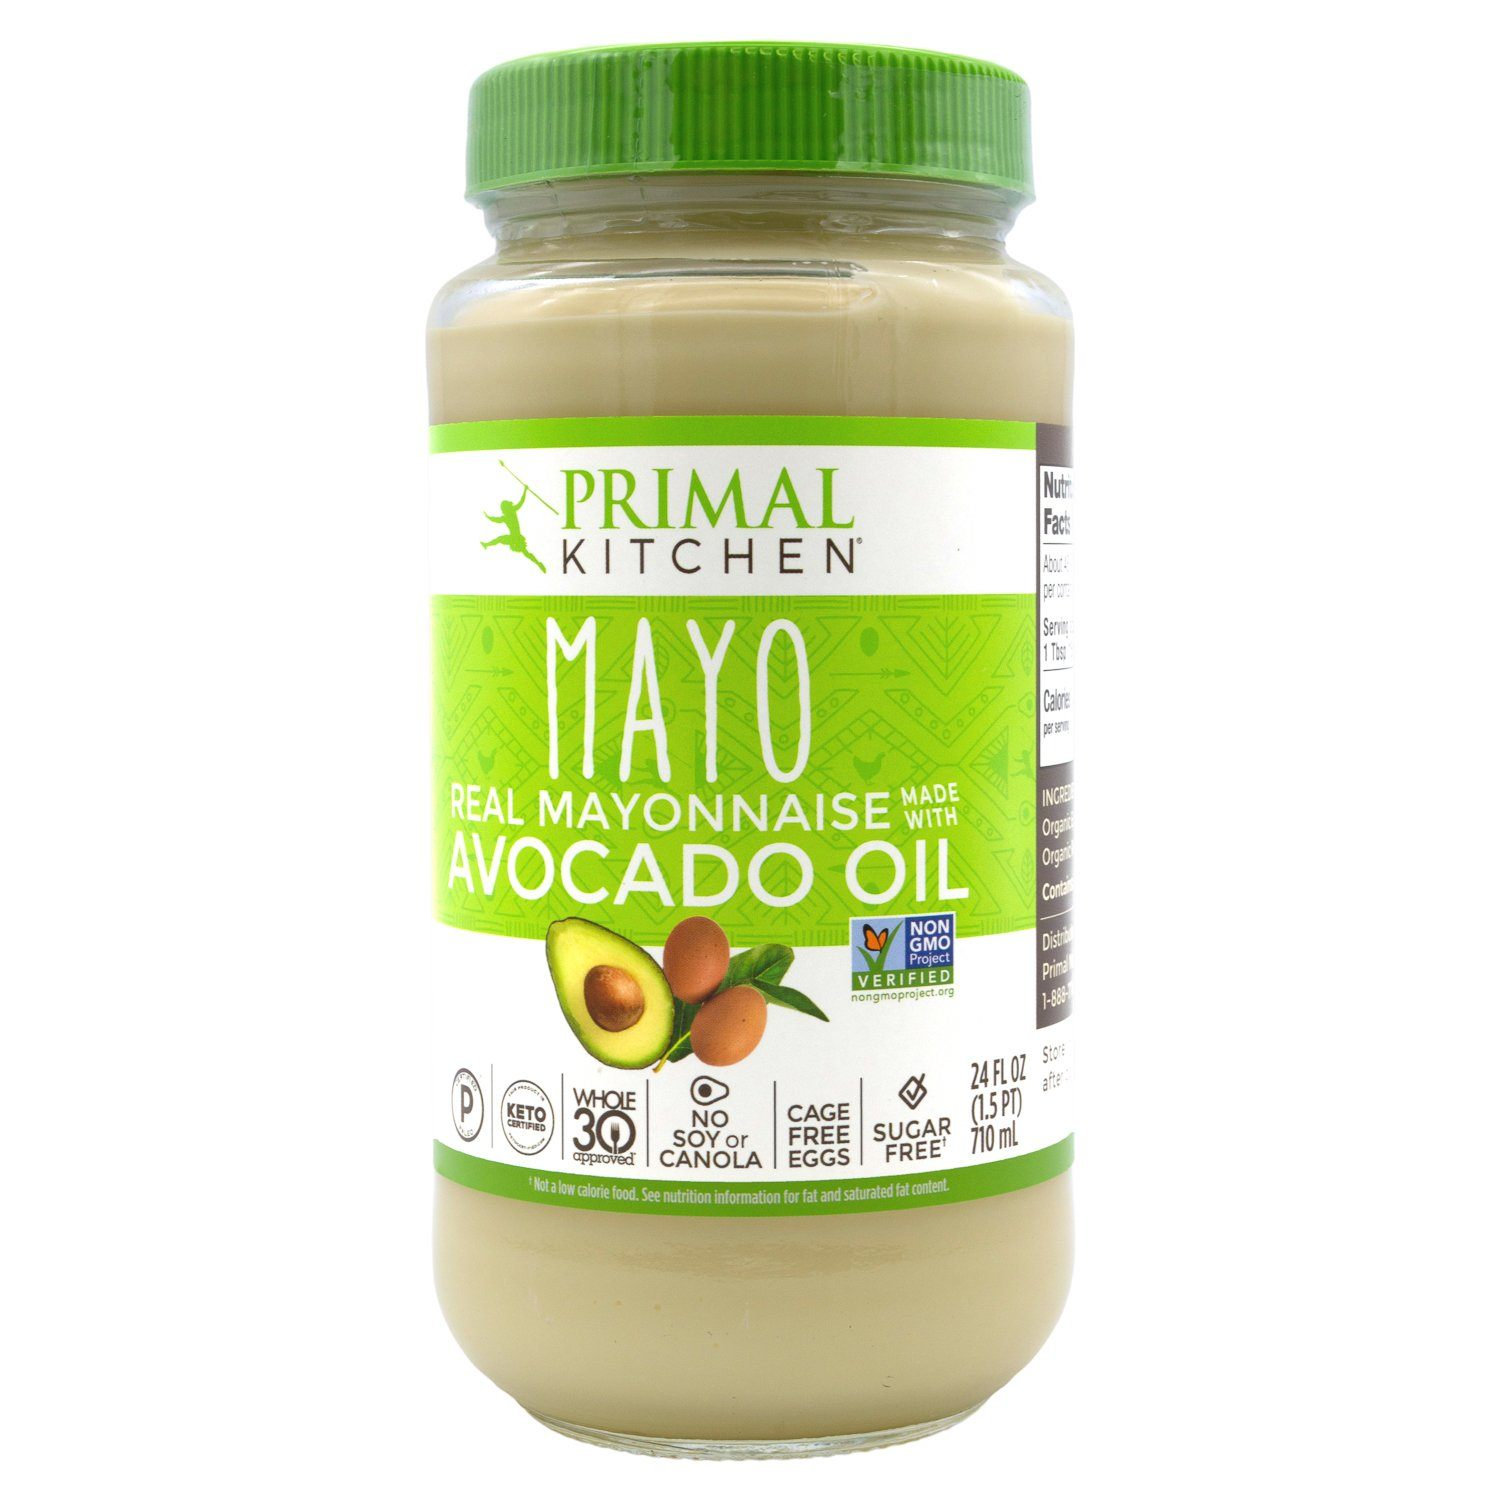 Primal Kitchen Mayo with Avocado Oil Primal Kitchen 24 Fluid Ounce